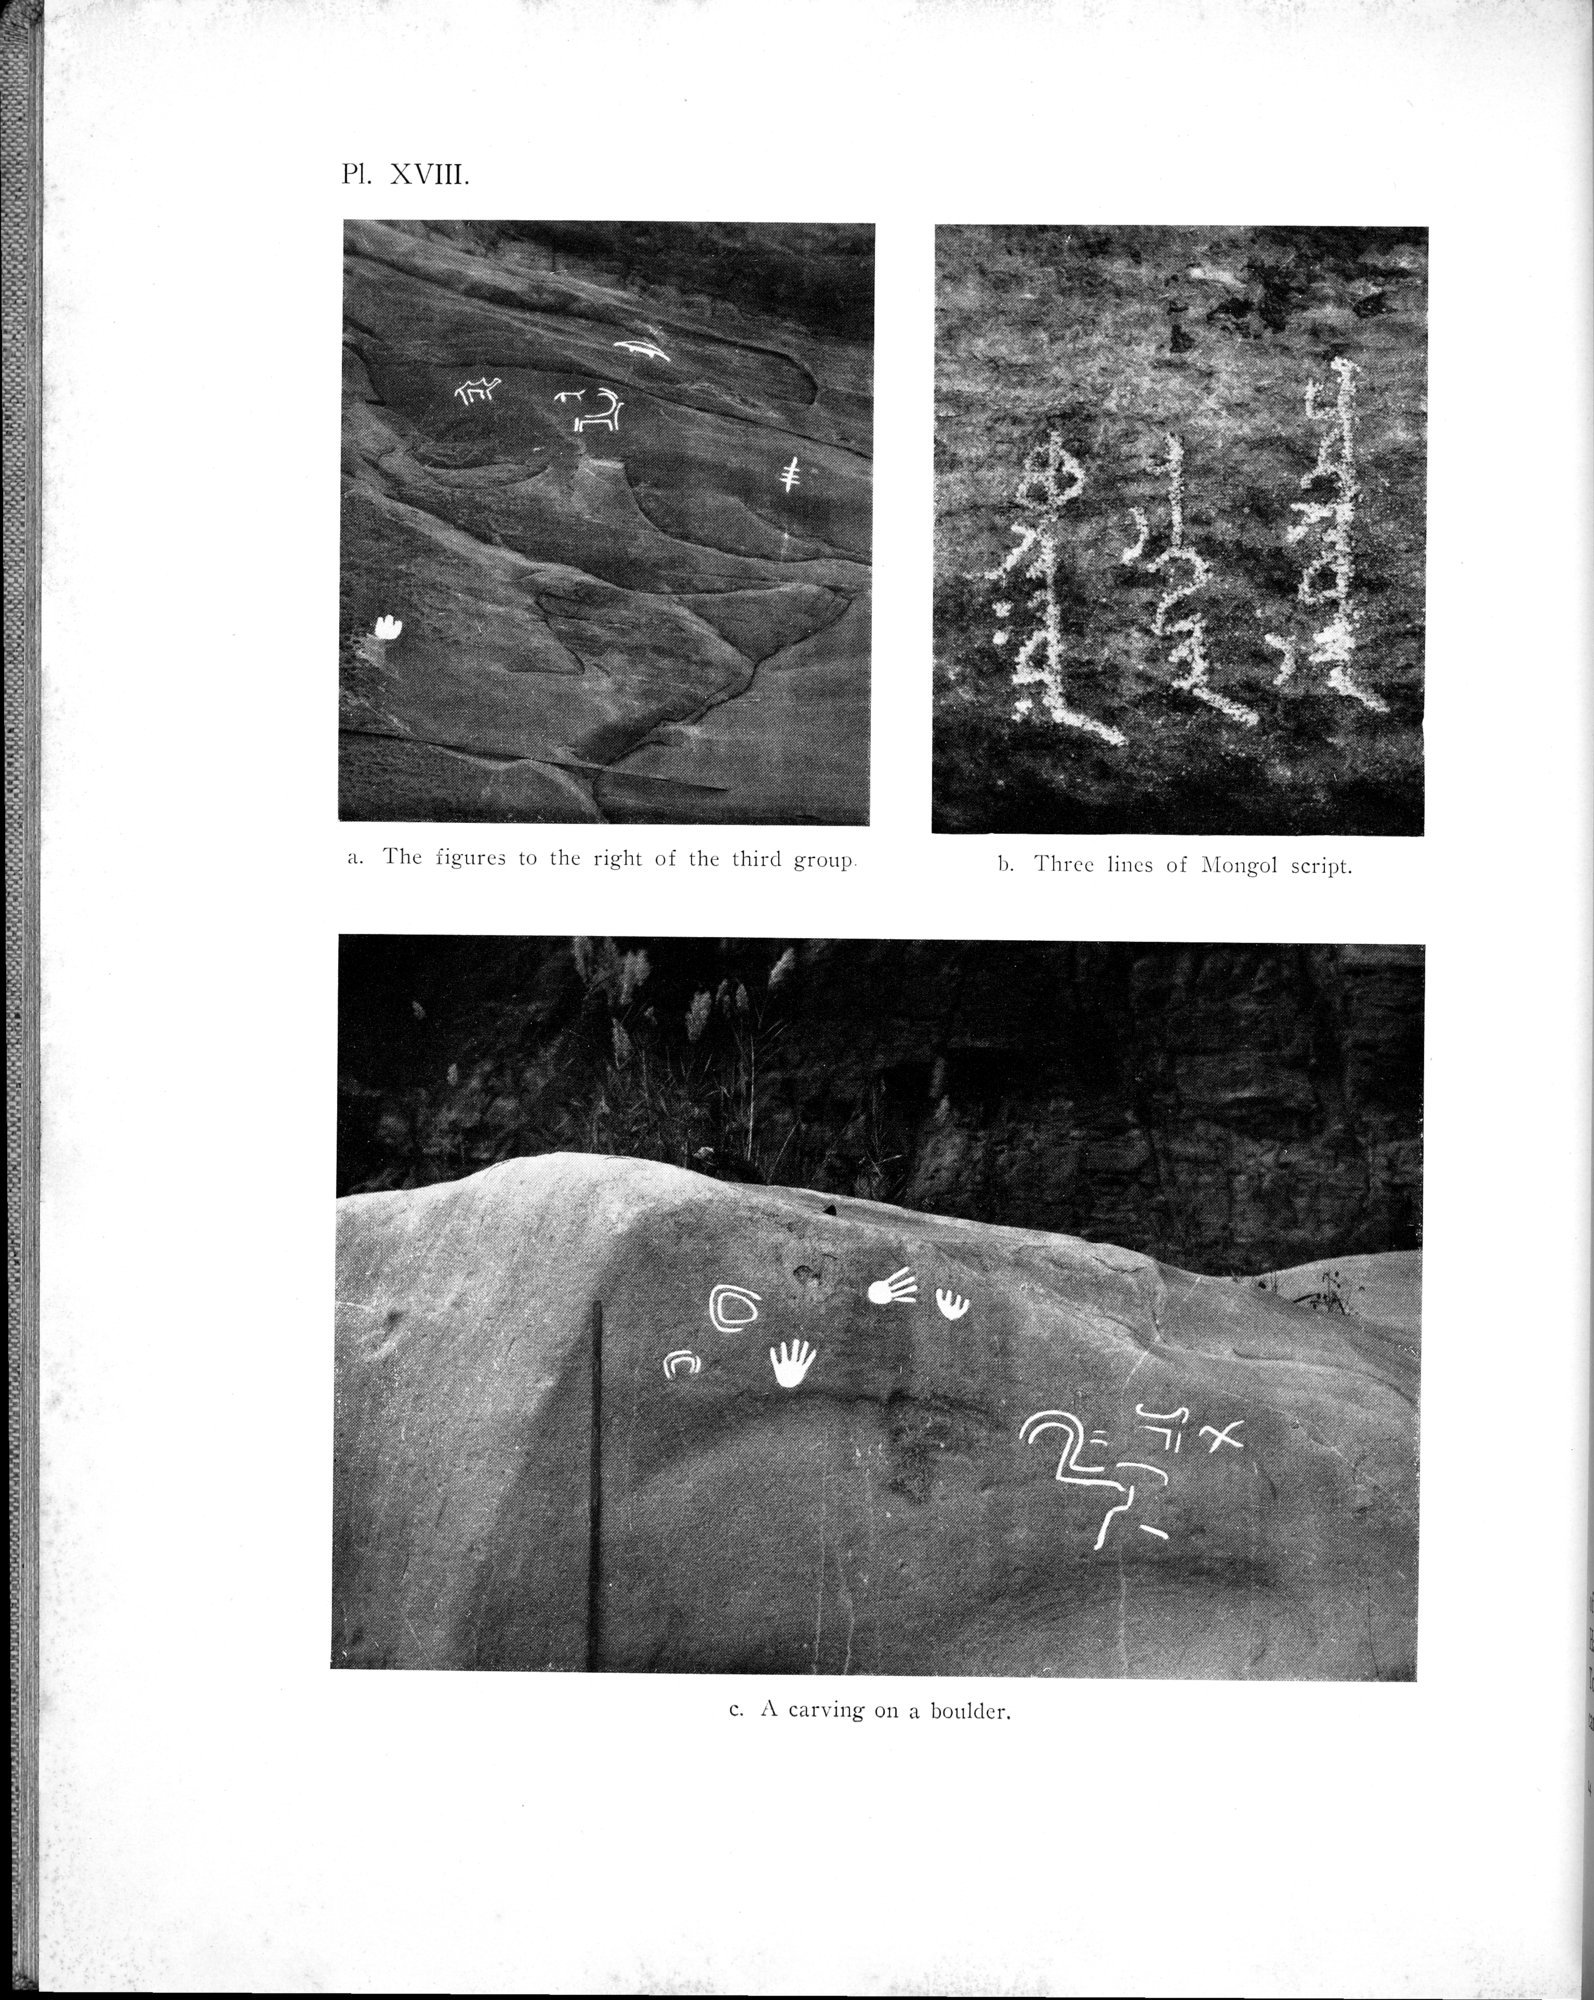 Archaeological Researches in Sinkiang : vol.1 / Page 232 (Grayscale High Resolution Image)